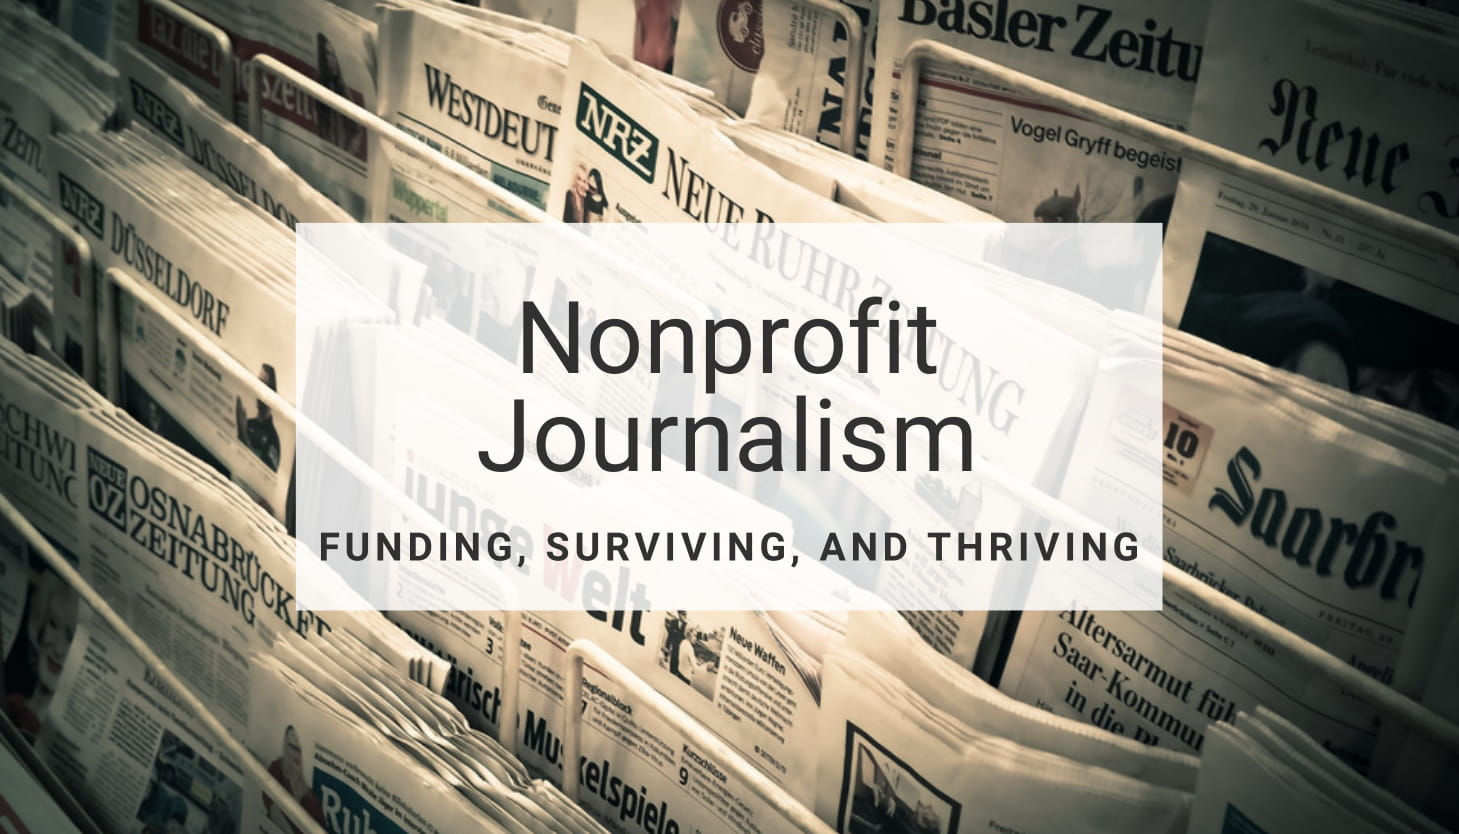 Nonprofit Journalism: Funding, Surviving, and Thriving